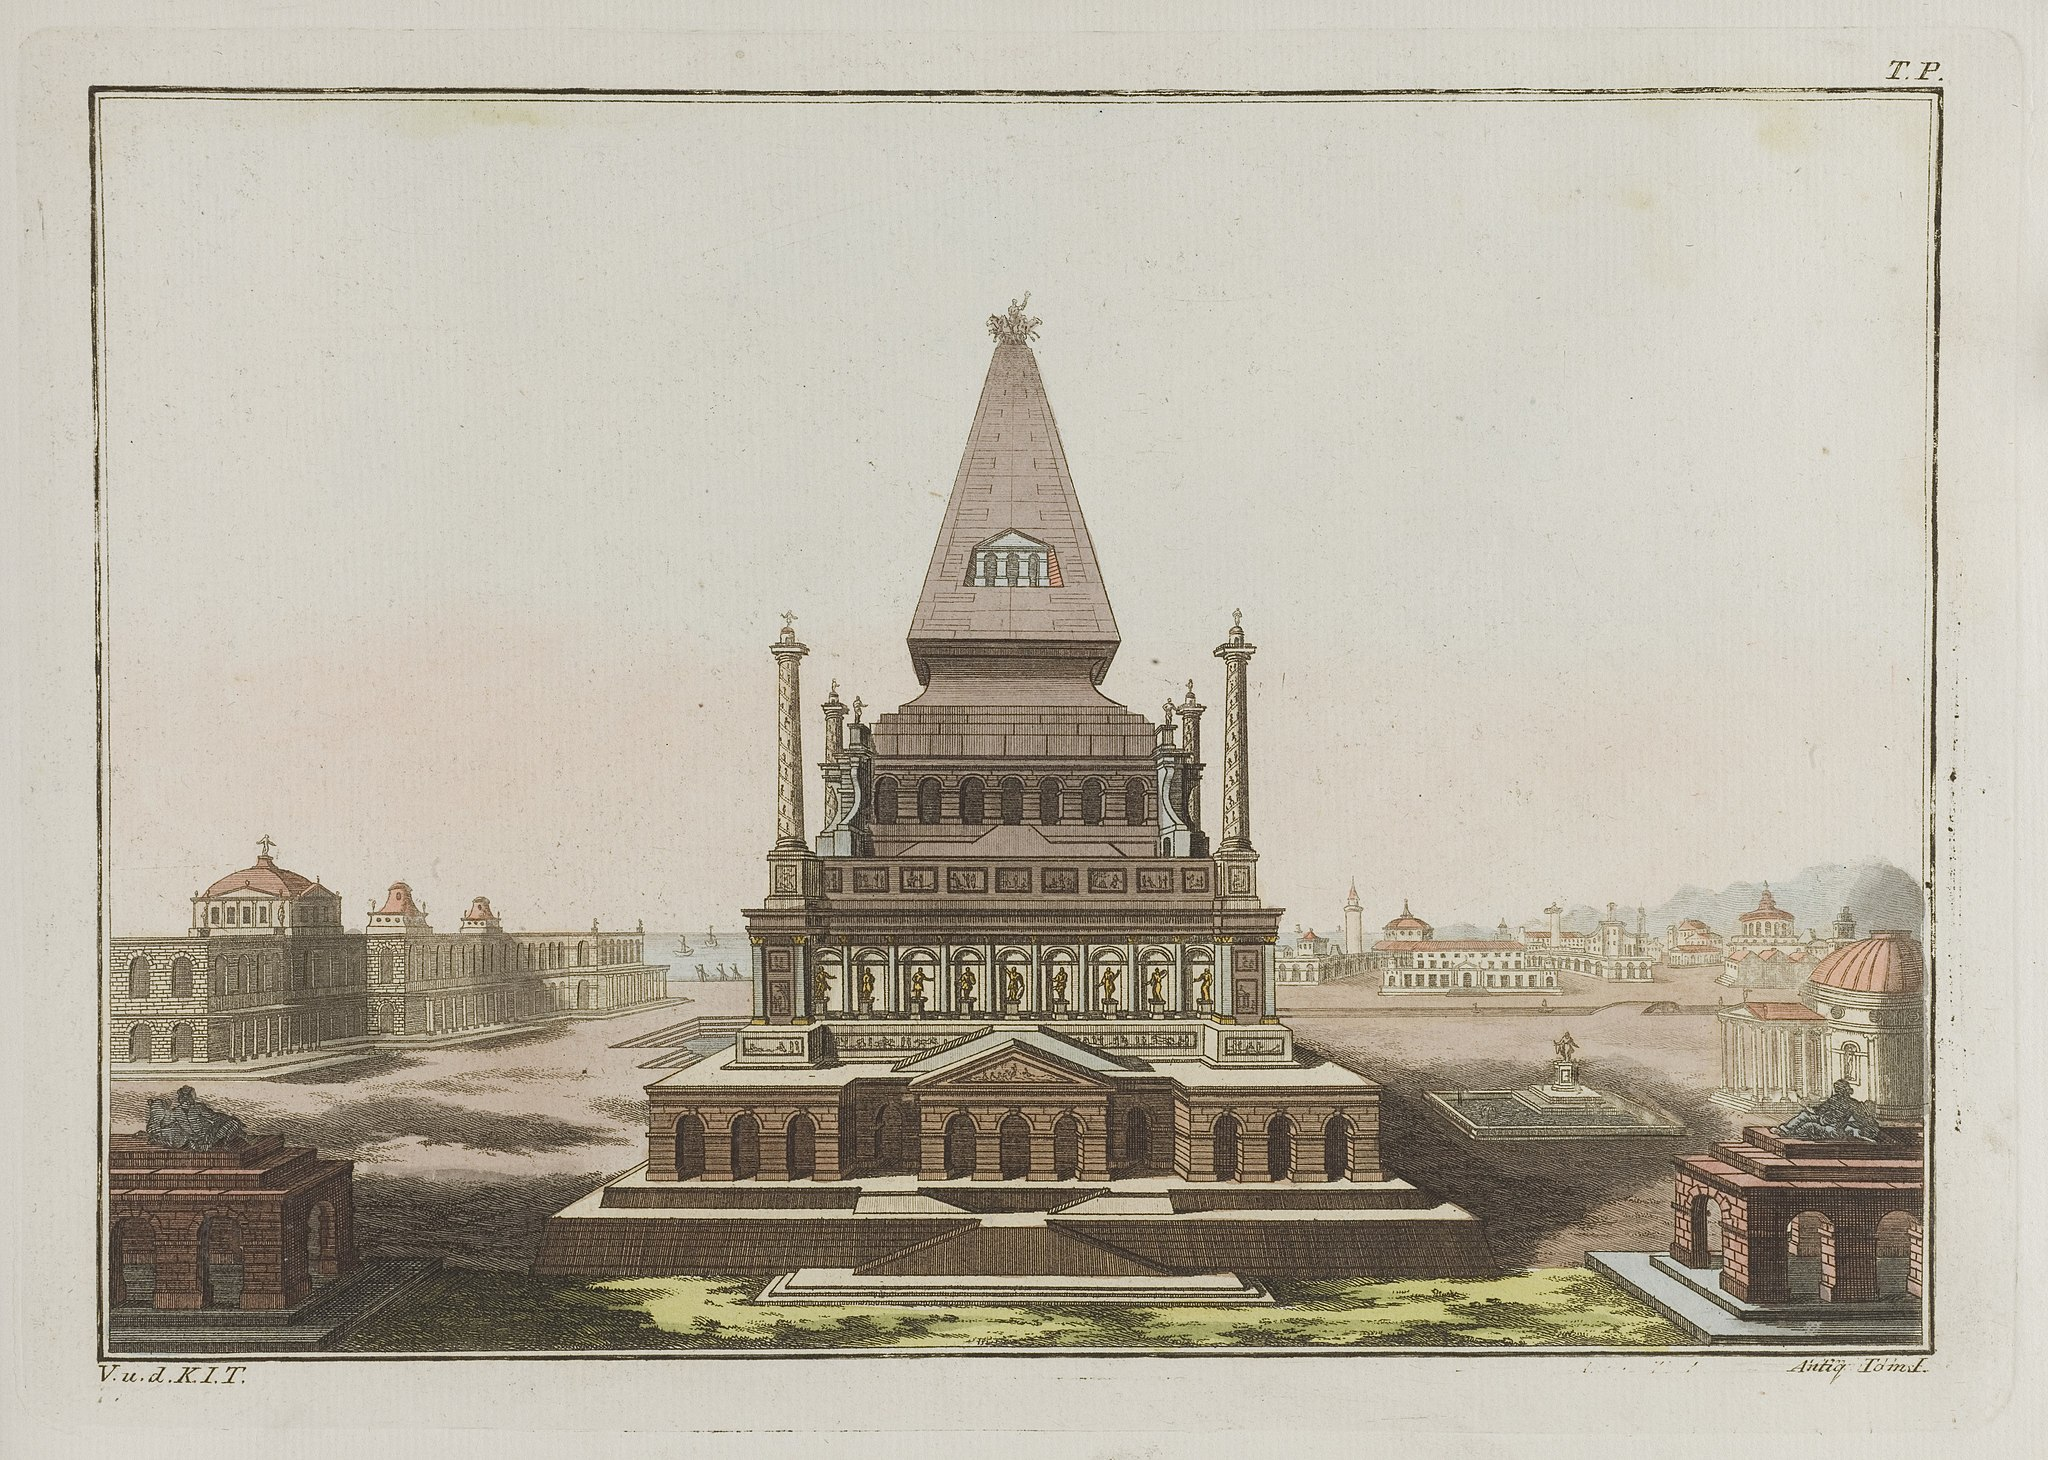 The tomb of Mausolus at Halicarnassus. Coloured engraving, Wellcome L0047677